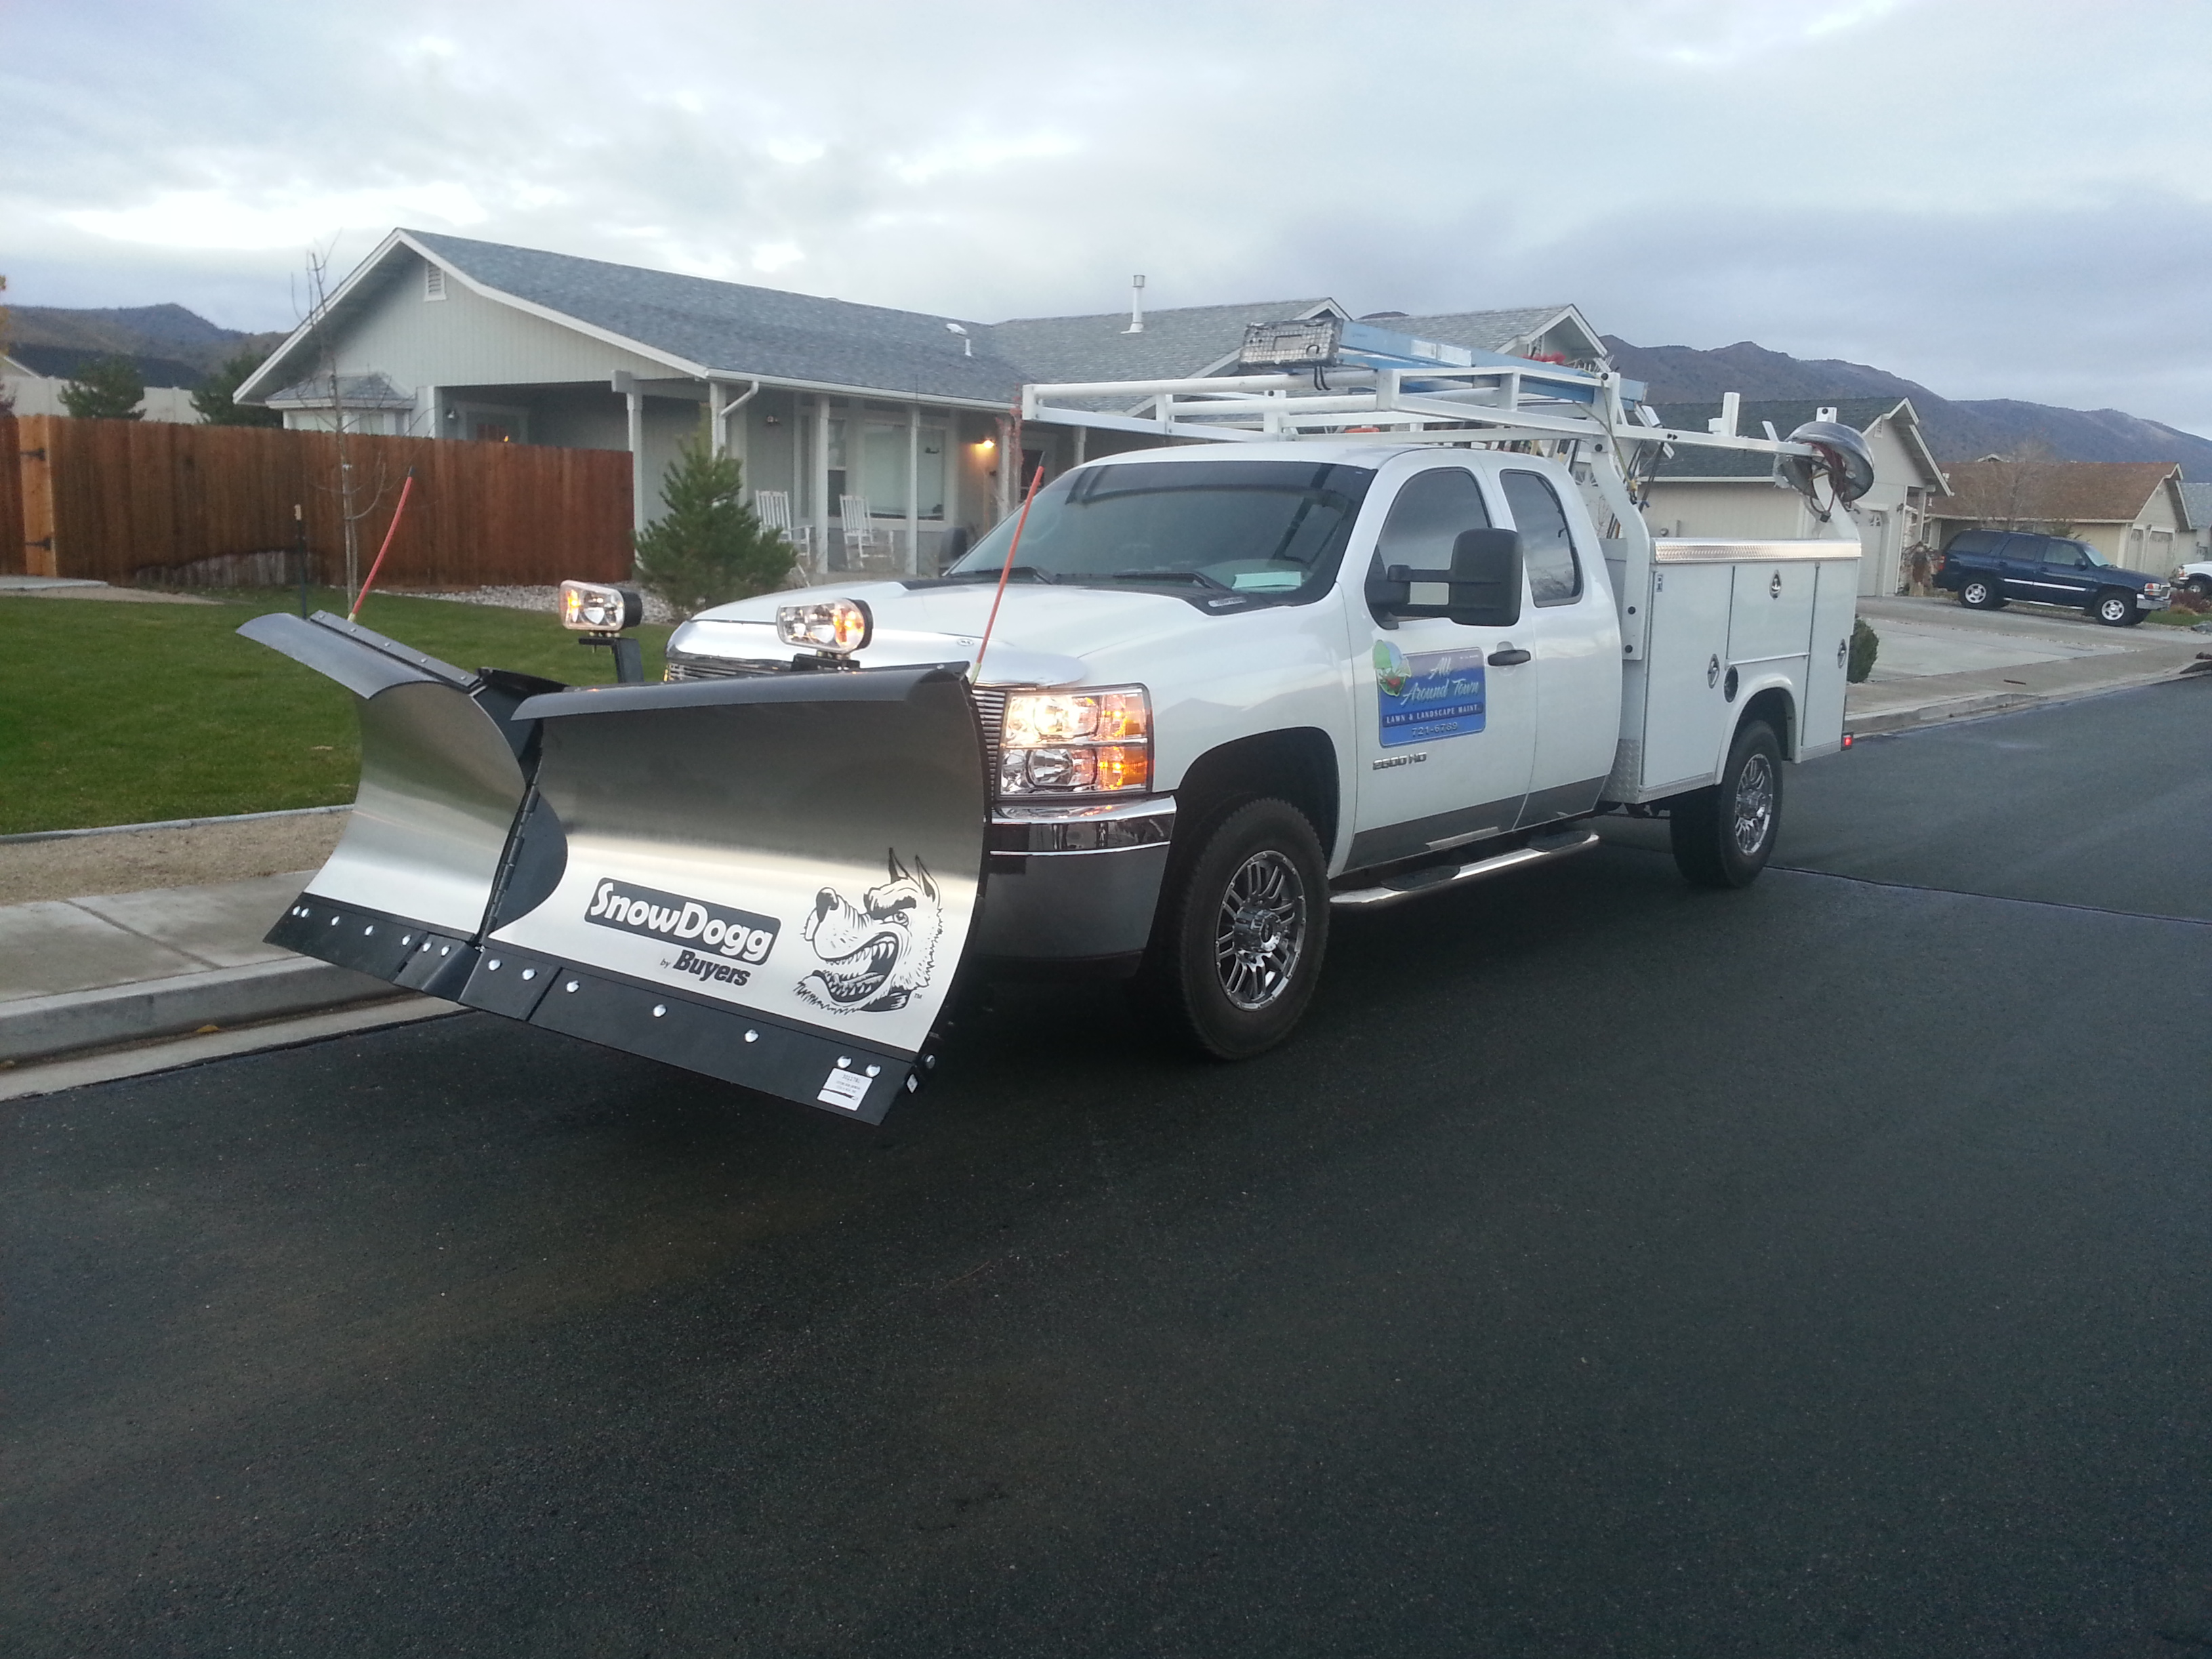 All Around Town Lawn & Landscape Maintenance - Sparks, NV 89431 - (775)721-6789 | ShowMeLocal.com